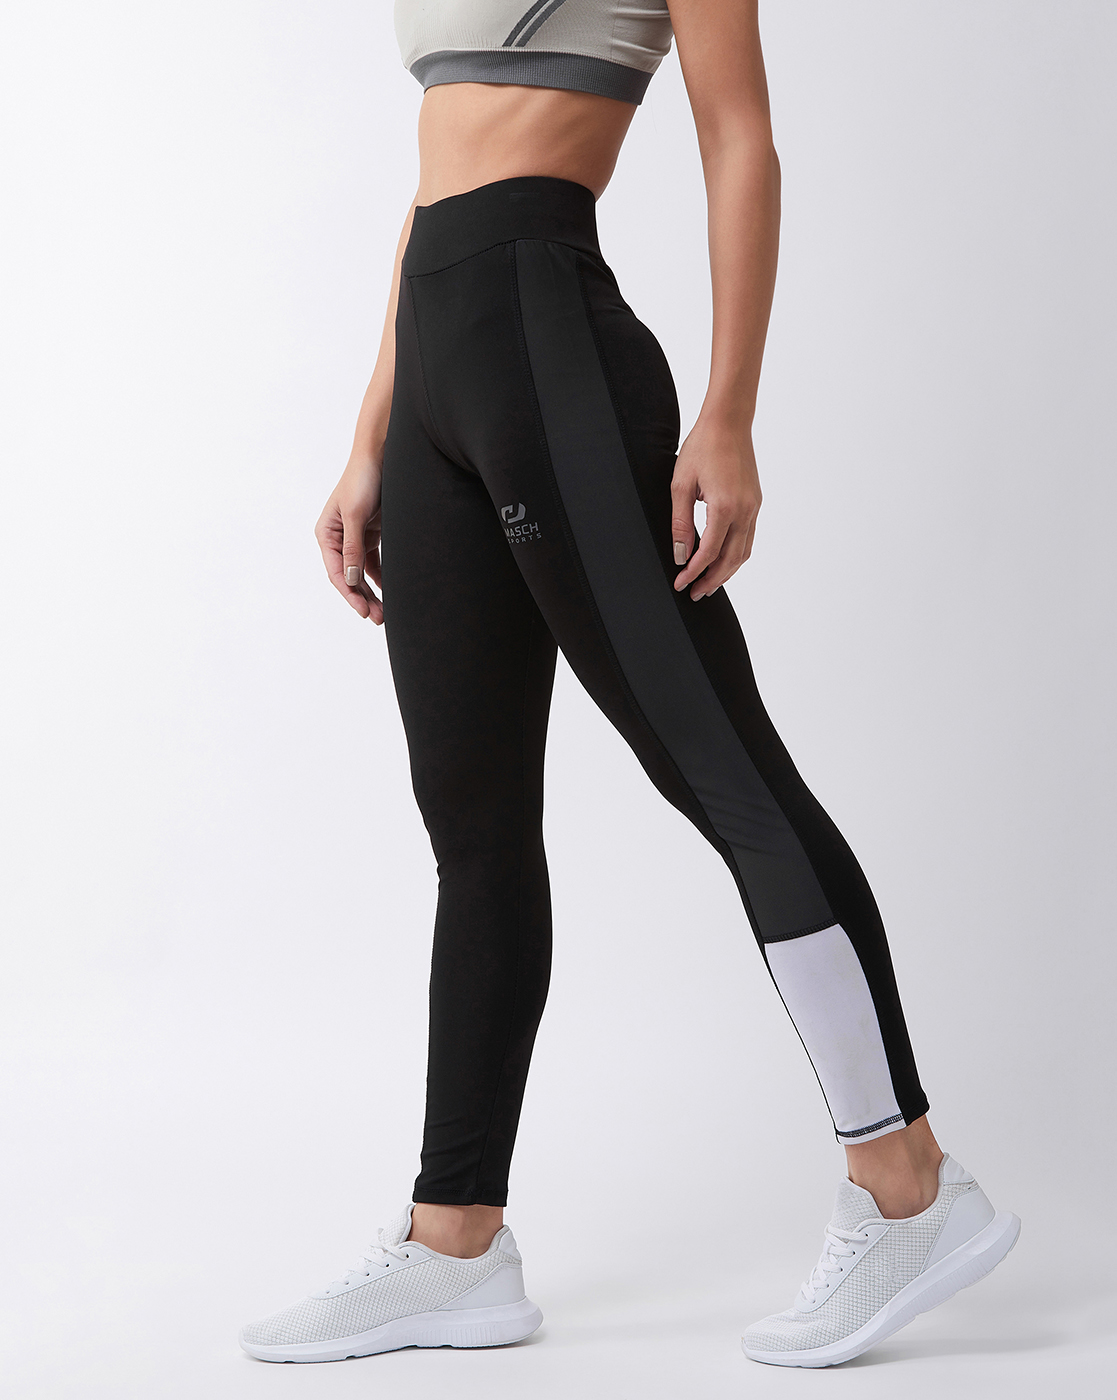 Masch Sports   Masch Sports Women's Black Solid Sports Tights with Dual Colour Grey and White Side Panel